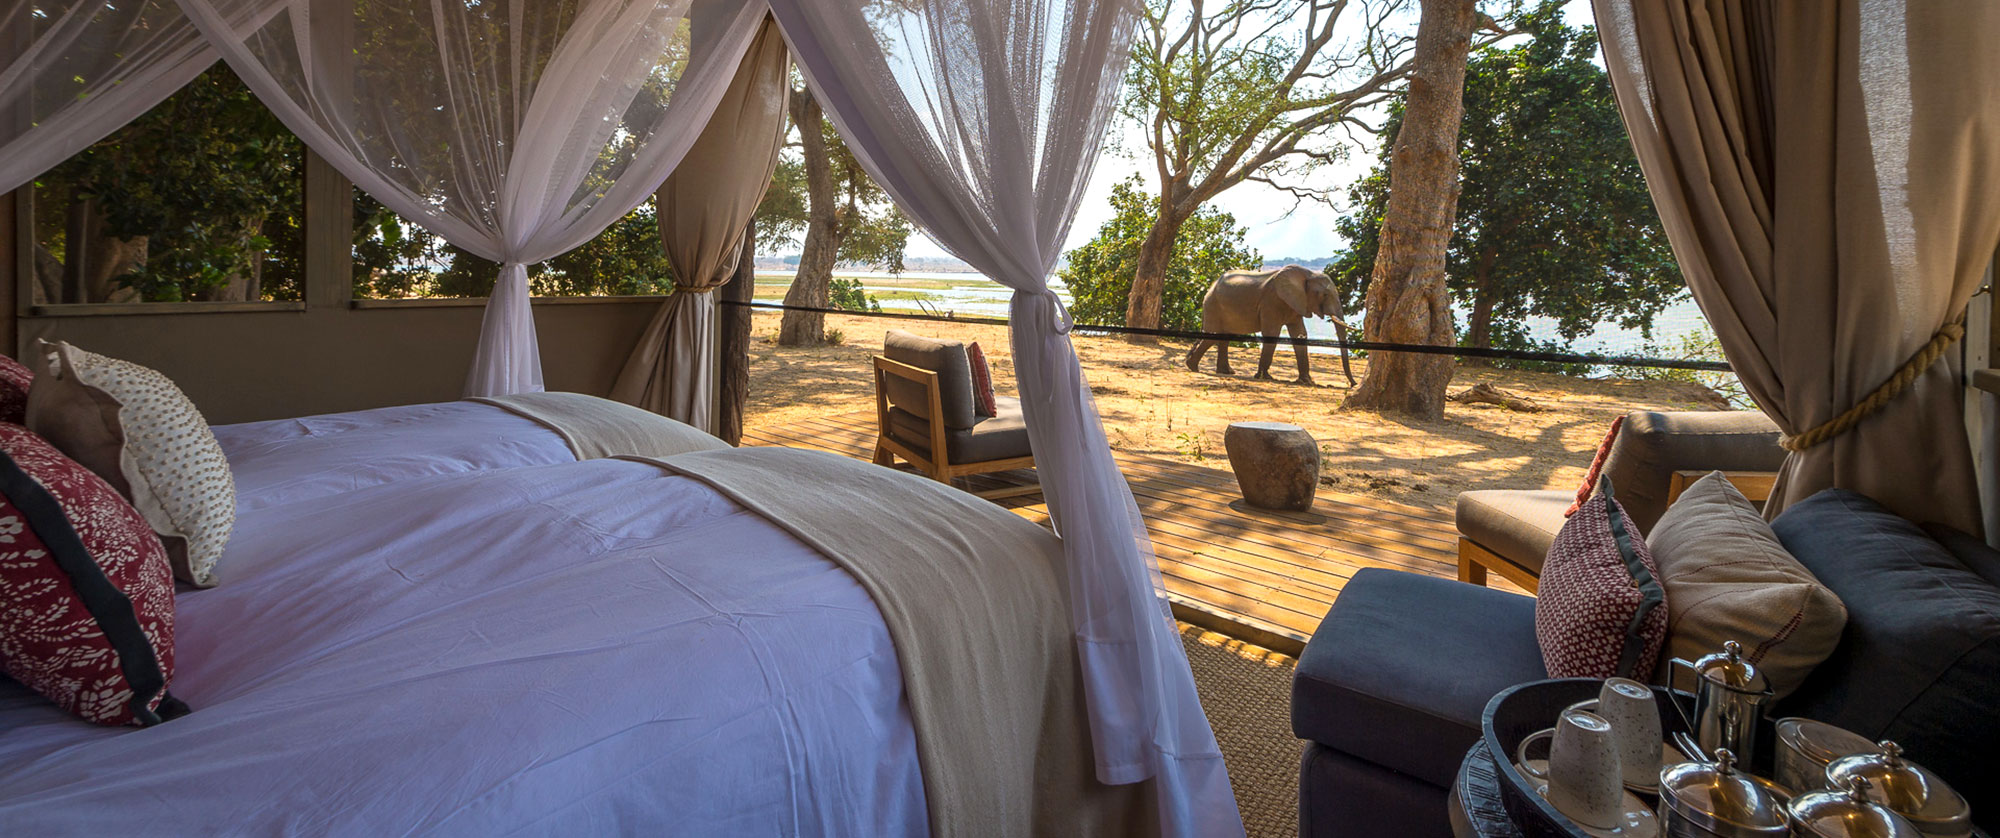 Classic Zimbabwe Safari Package - Little Ruckomechi Camp, Mana Pools National Park, See Wildlife from Your Tent